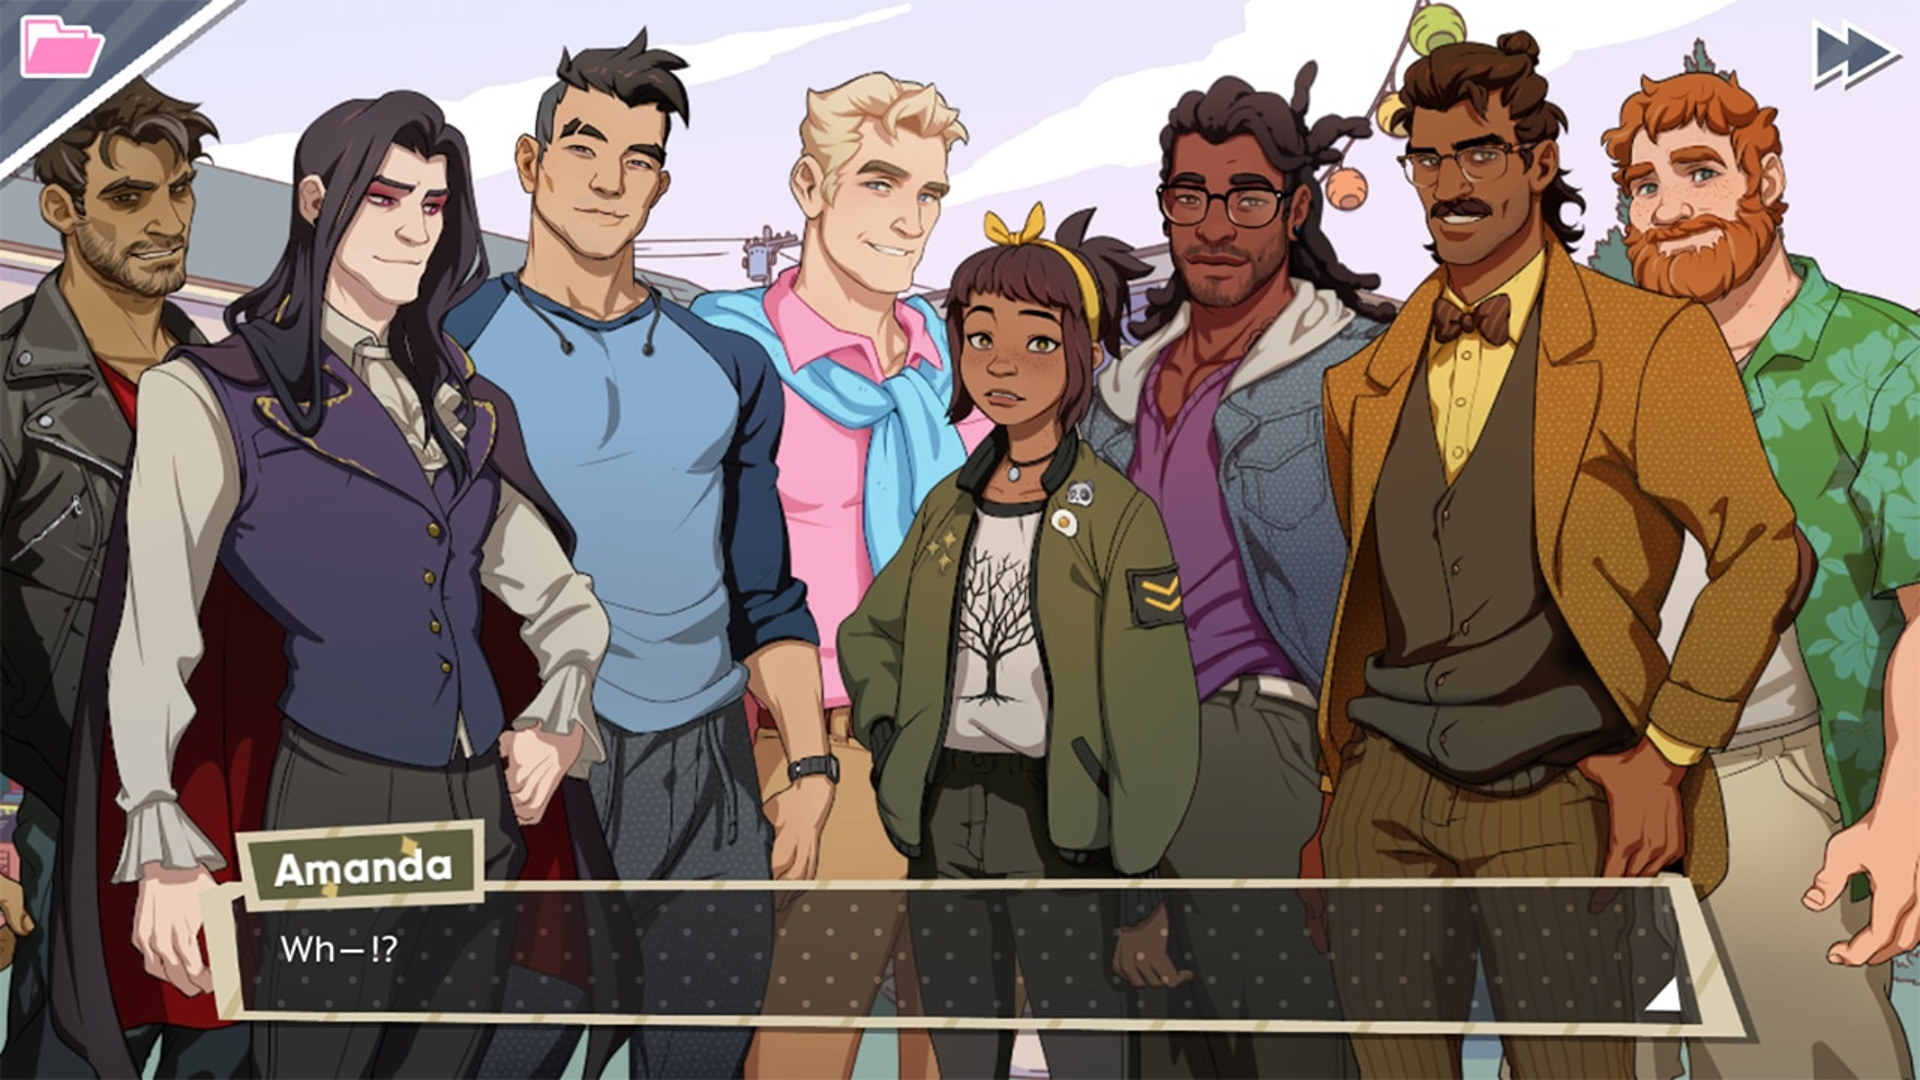 Steam are holding an LGBTQ+ sale highlighting queer games and creators